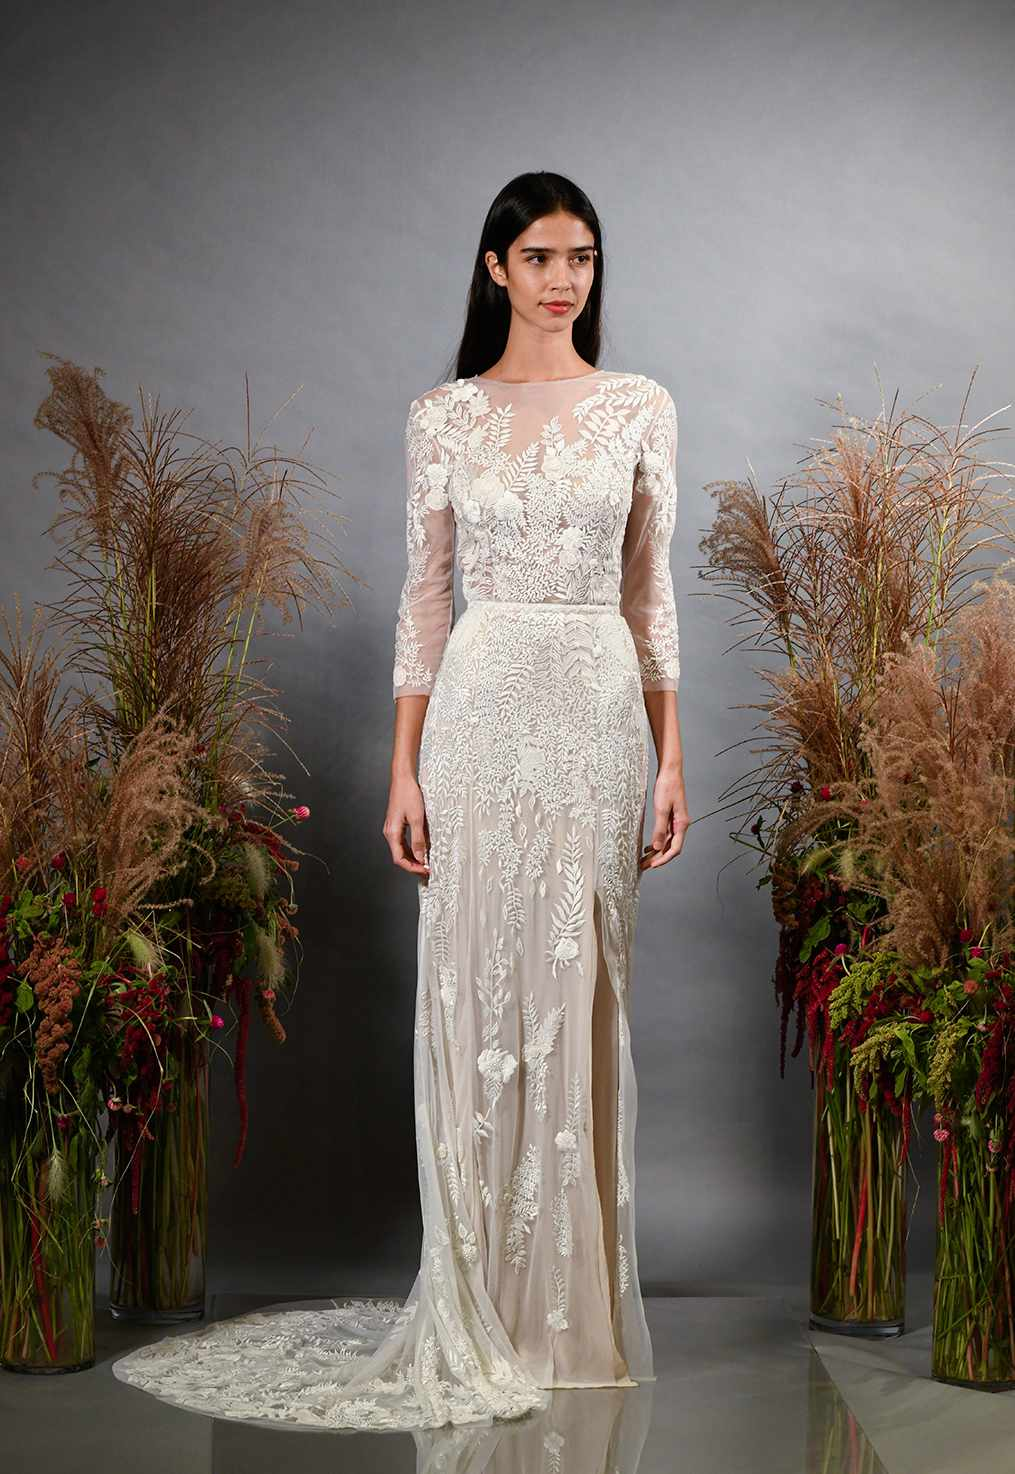 Model in sheer embroidered wedding dress